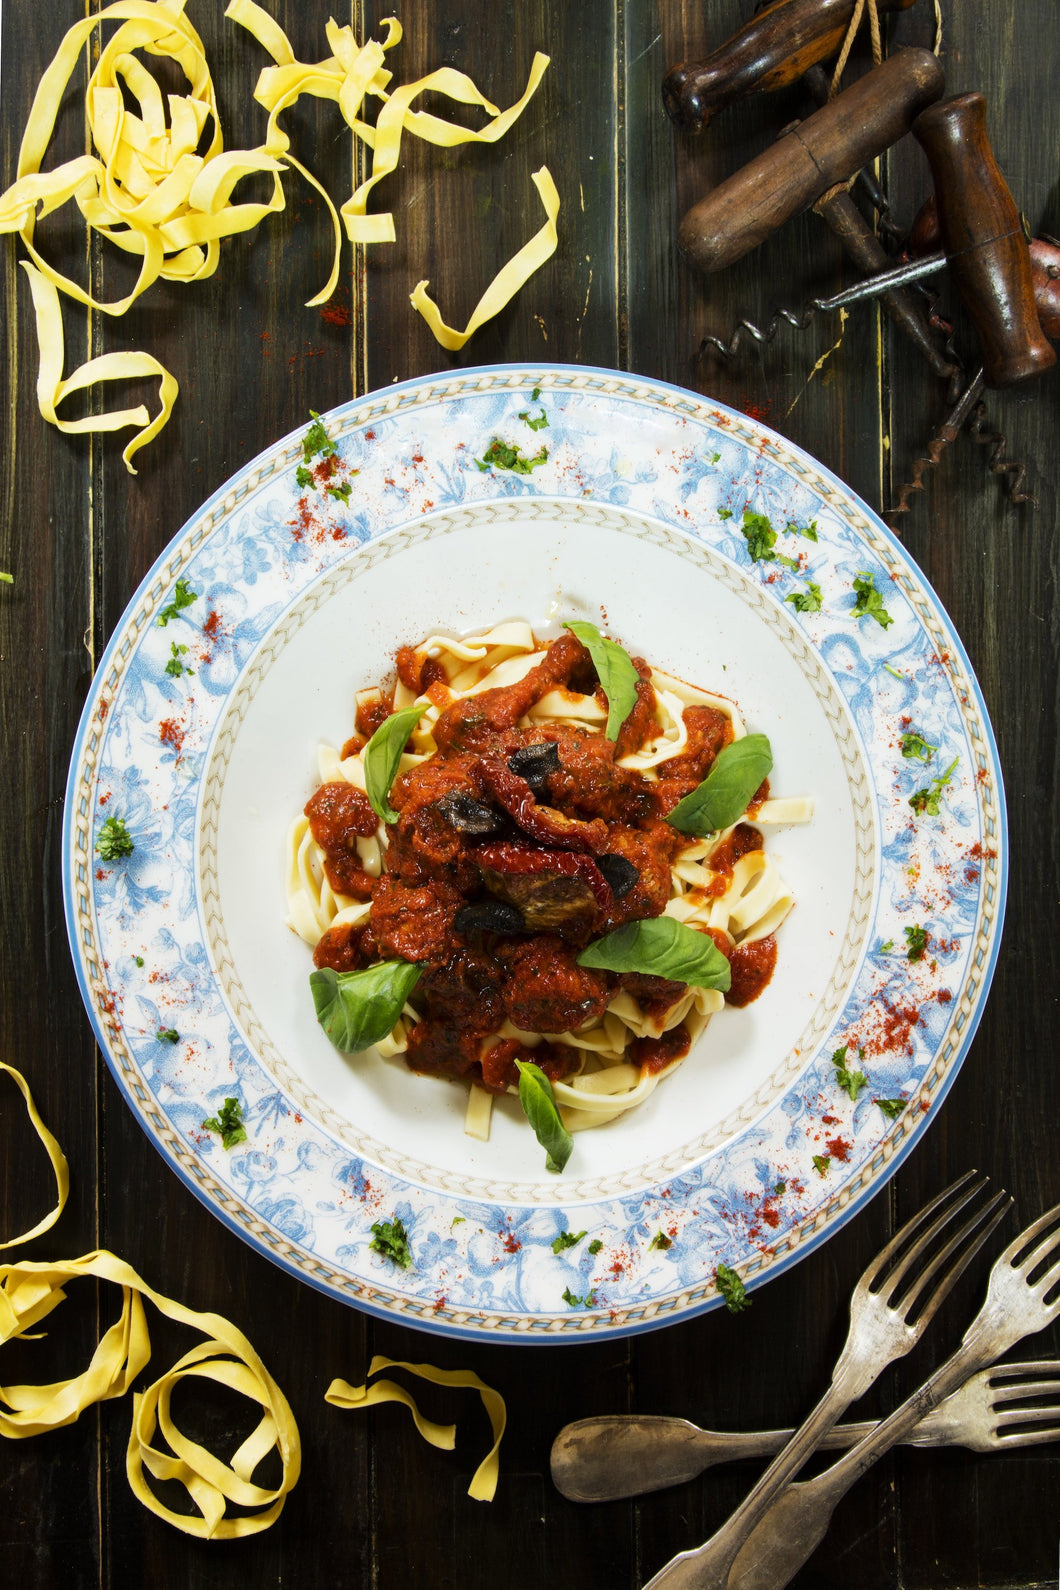 Italian Black Olive & Sundried Tomato with Tagliatelle